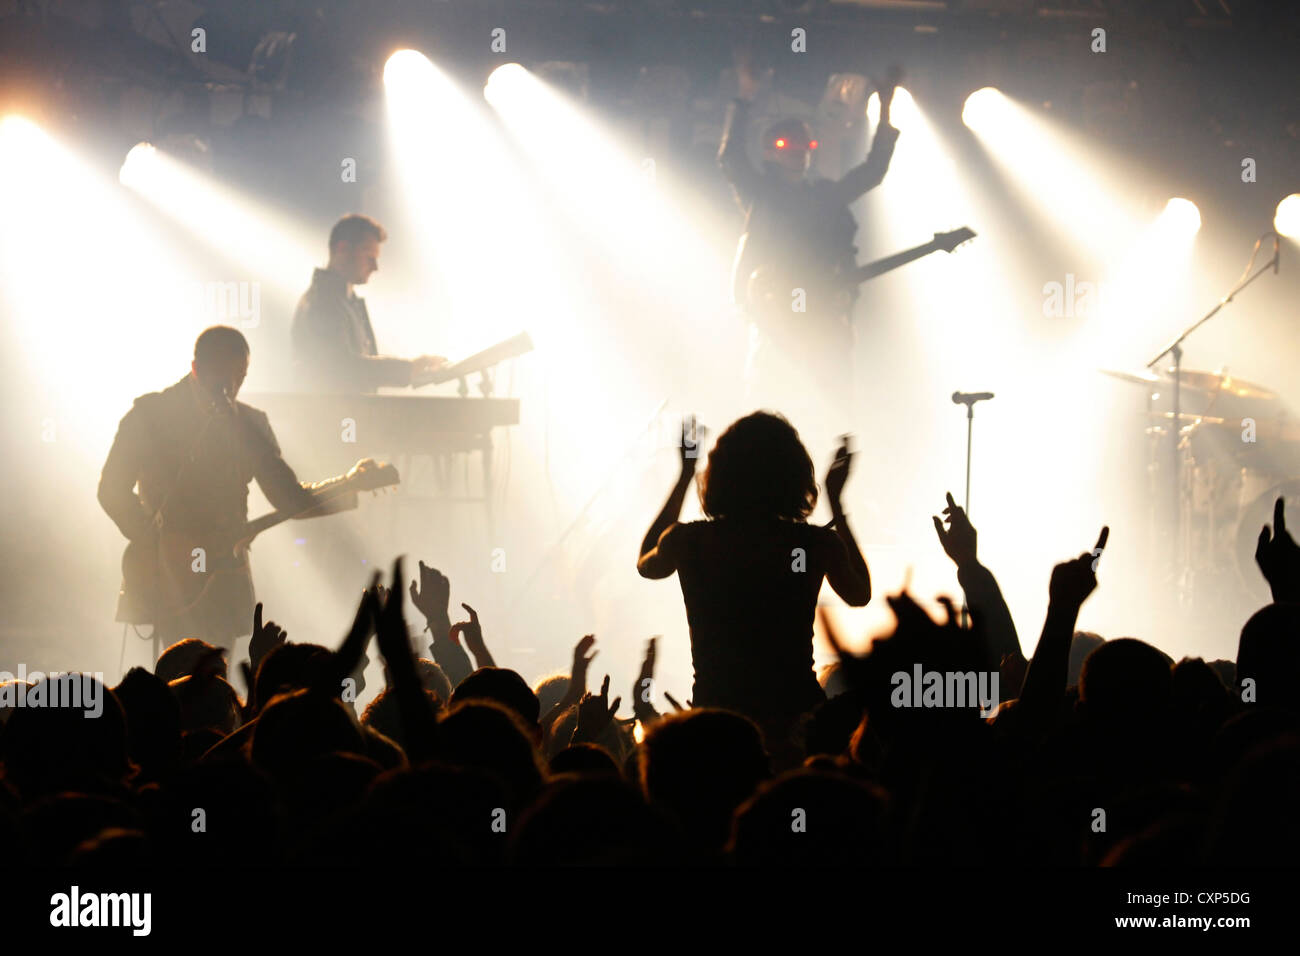 Silhouetted spectators / crowd and ambiance during live rock concert with rockers on stage illuminated by spotlights - Stock Image